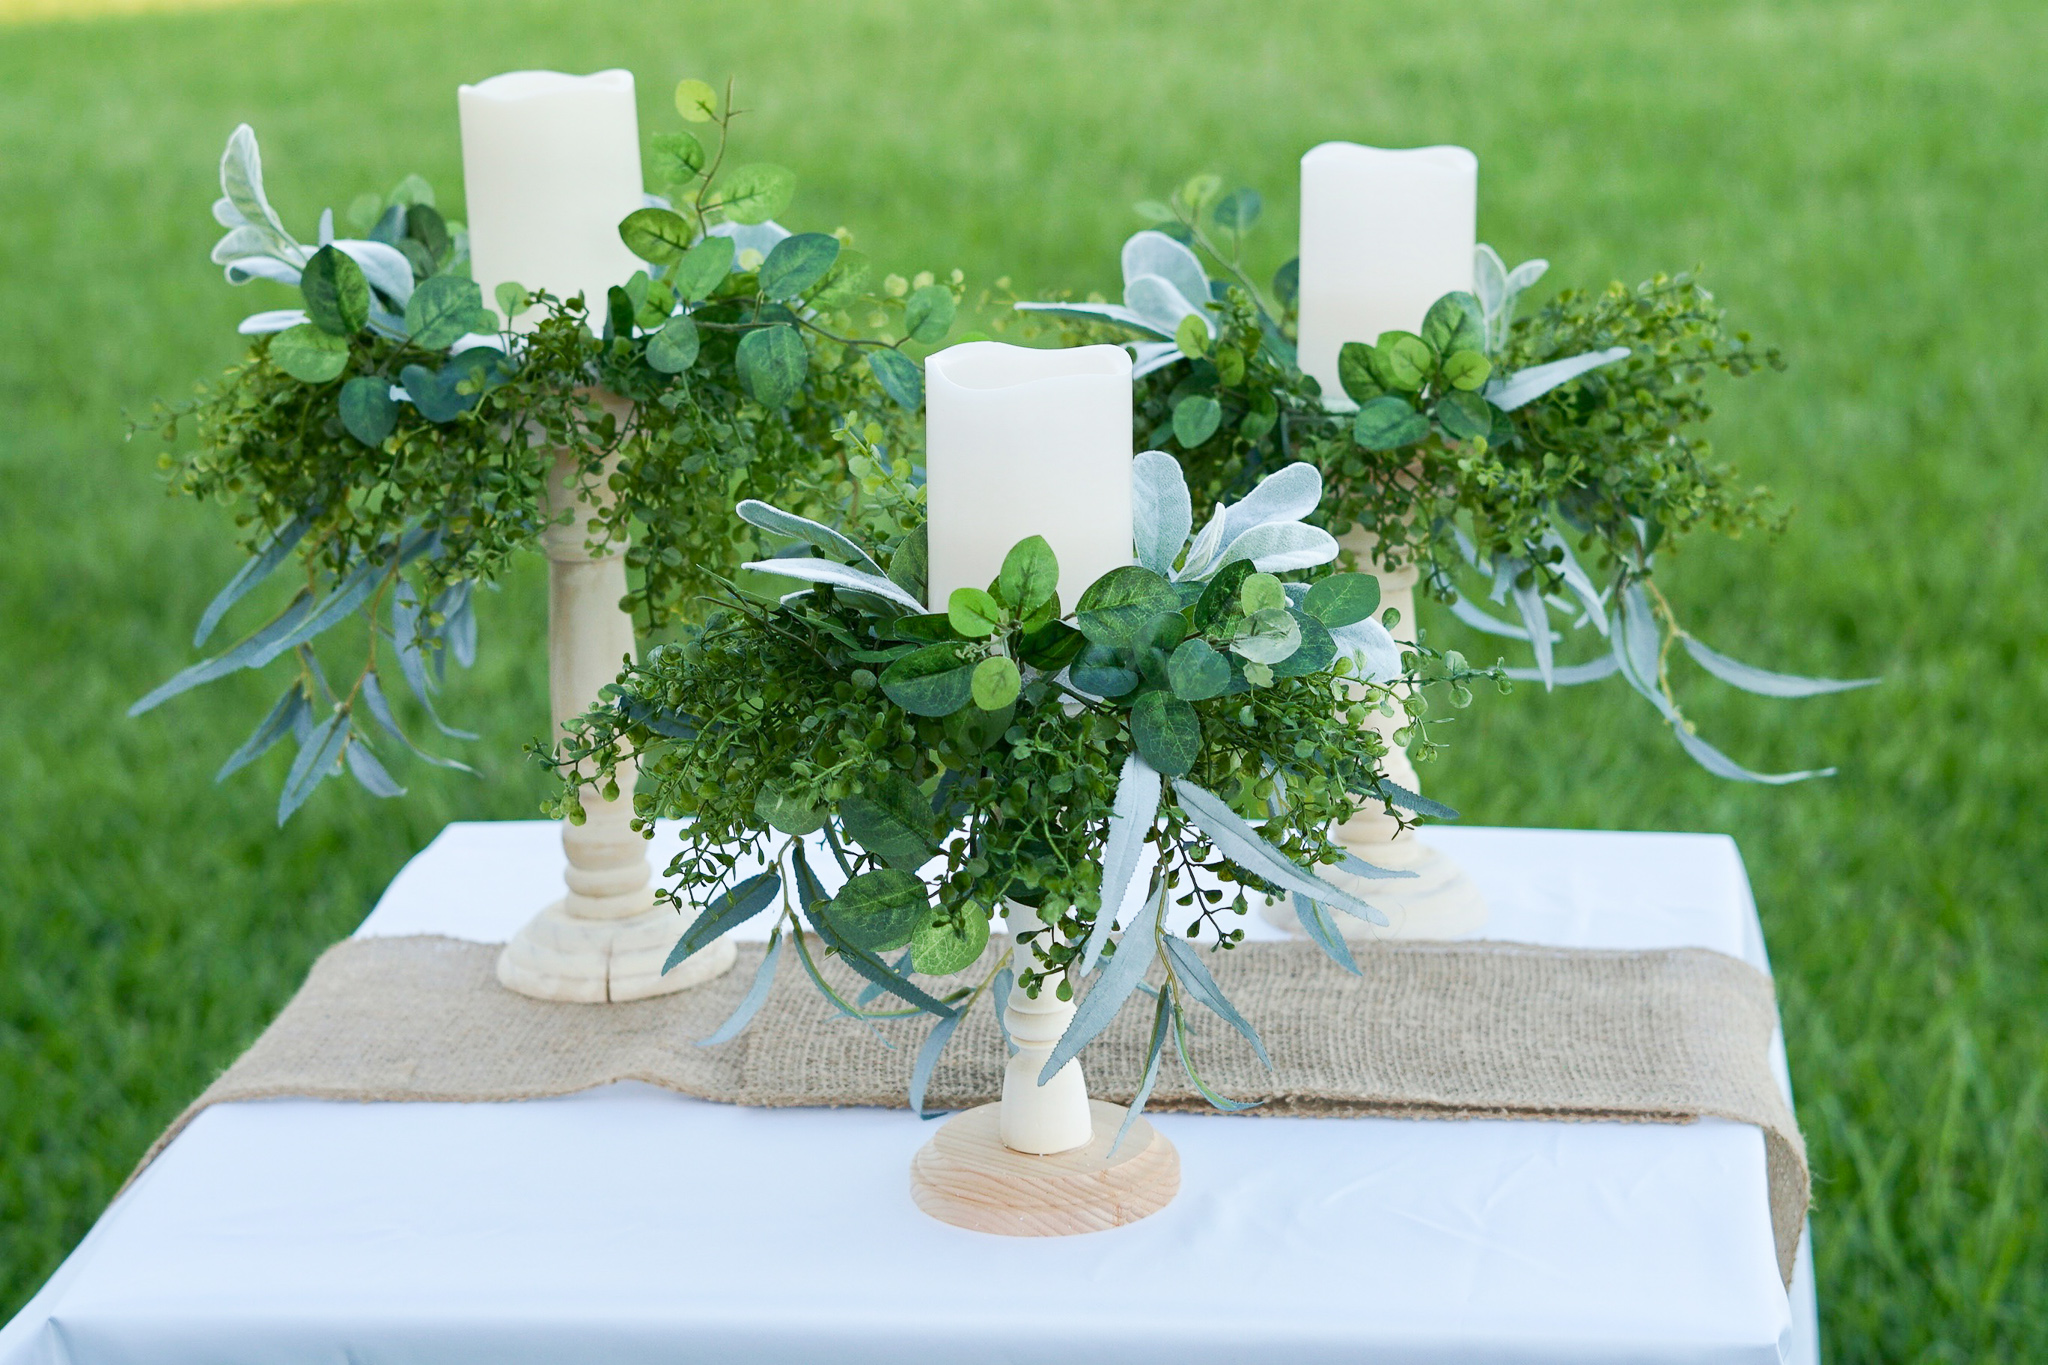 Groovy How To Make Diy Rustic Candle Holder Wedding Centerpieces Home Interior And Landscaping Transignezvosmurscom